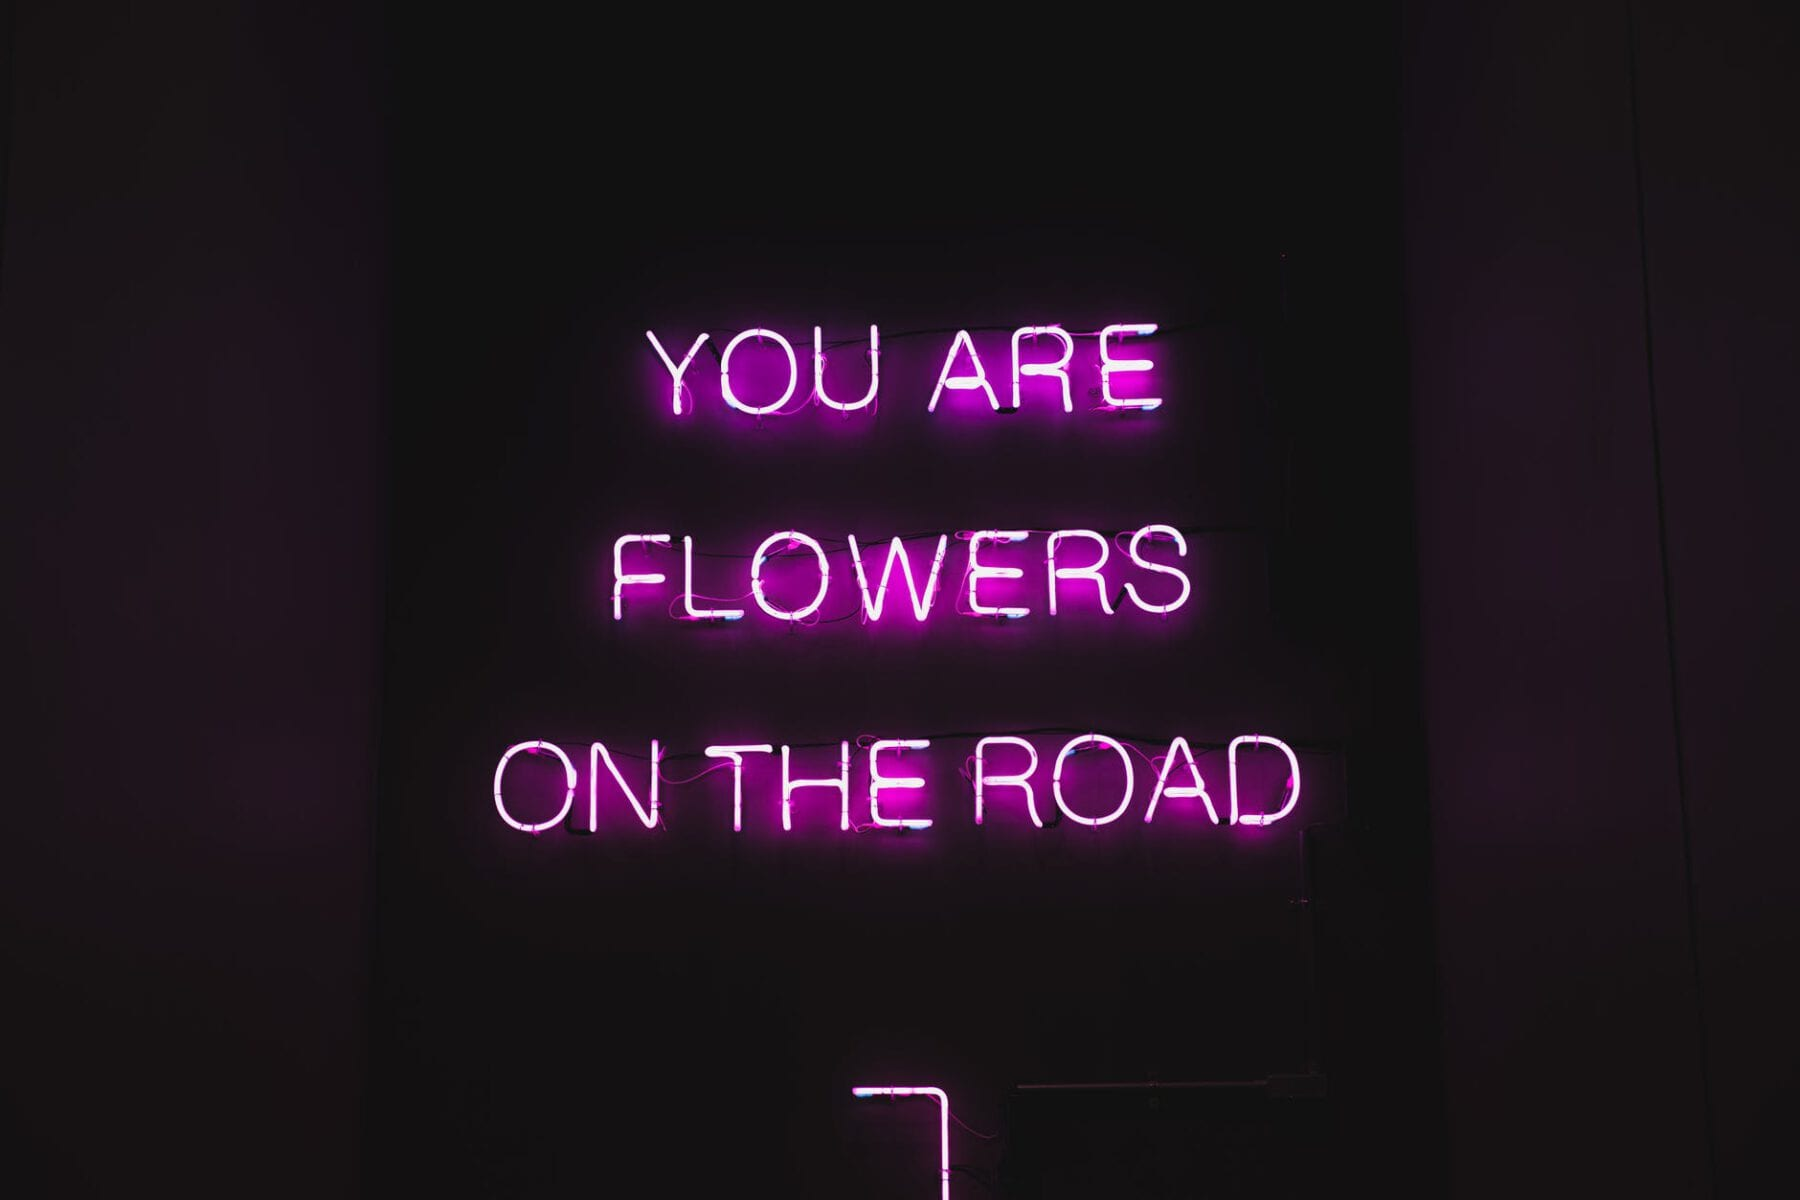 black billboard with pink text